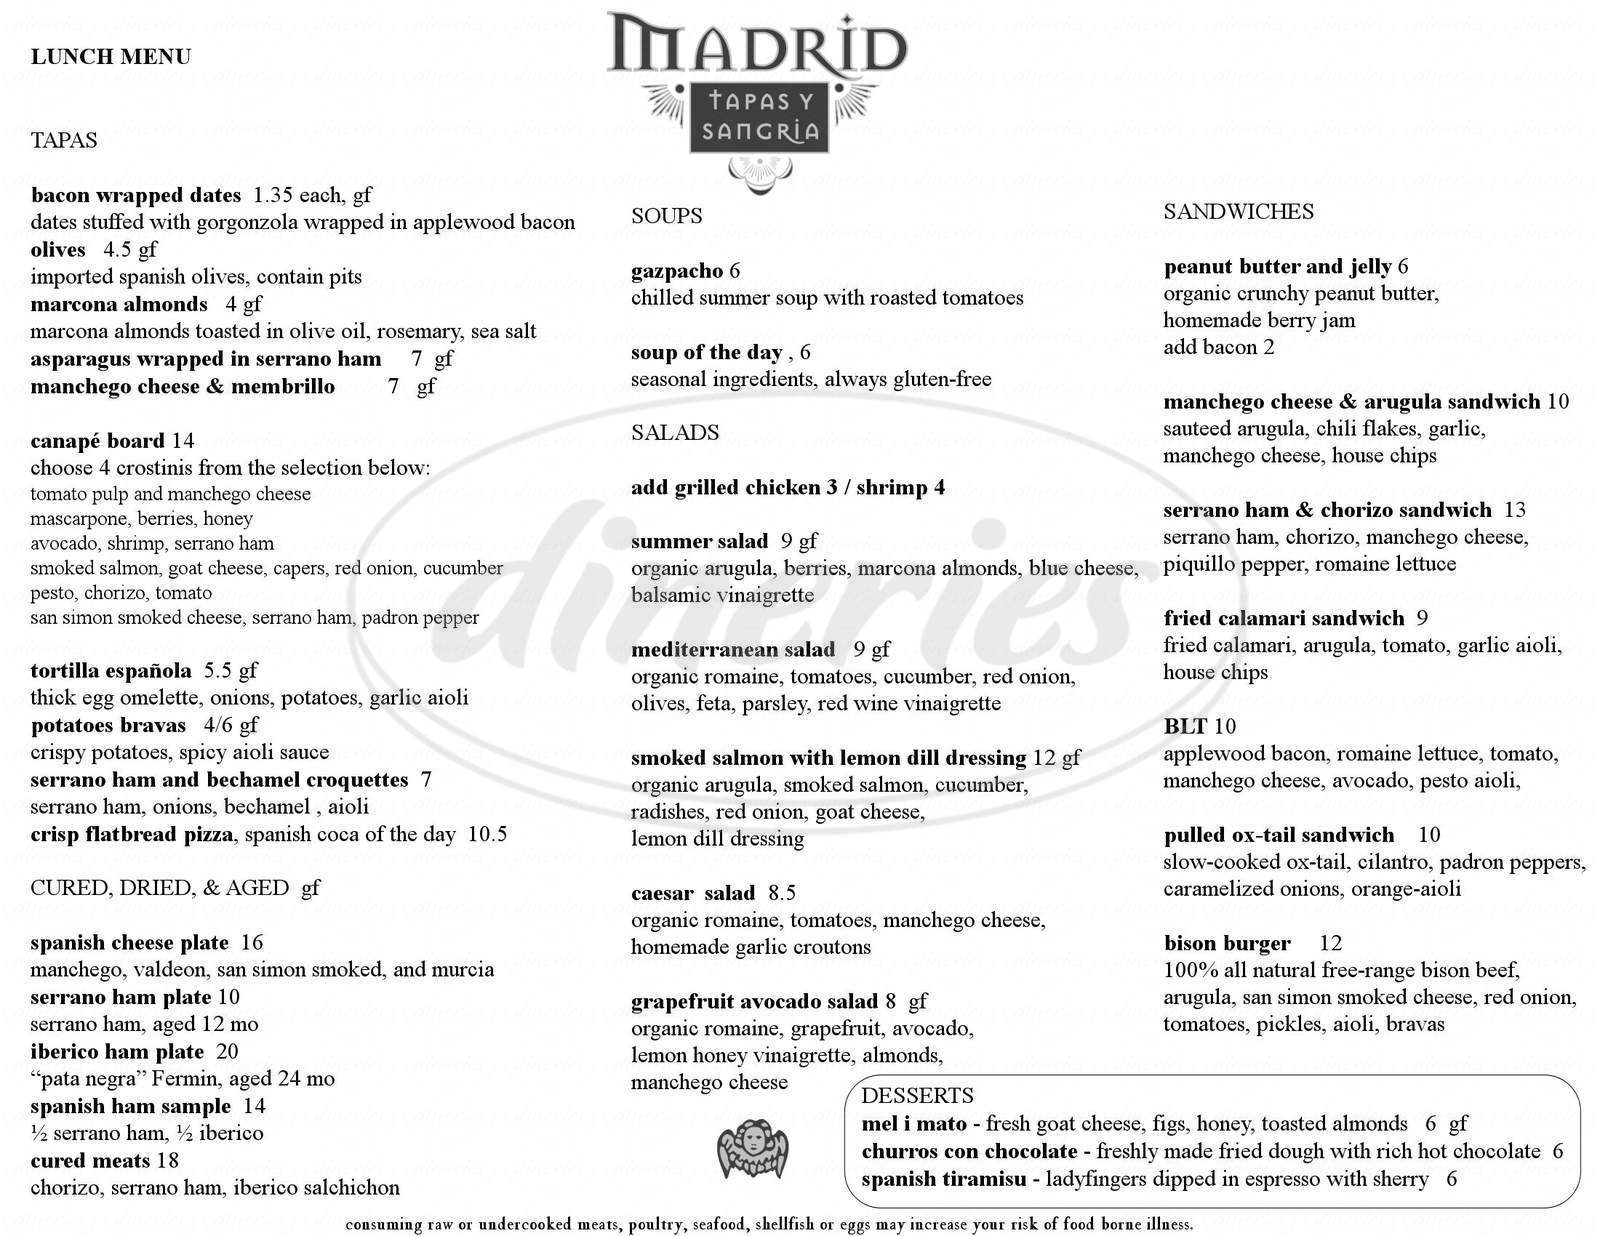 menu for Madrid Tapas Y Sangria